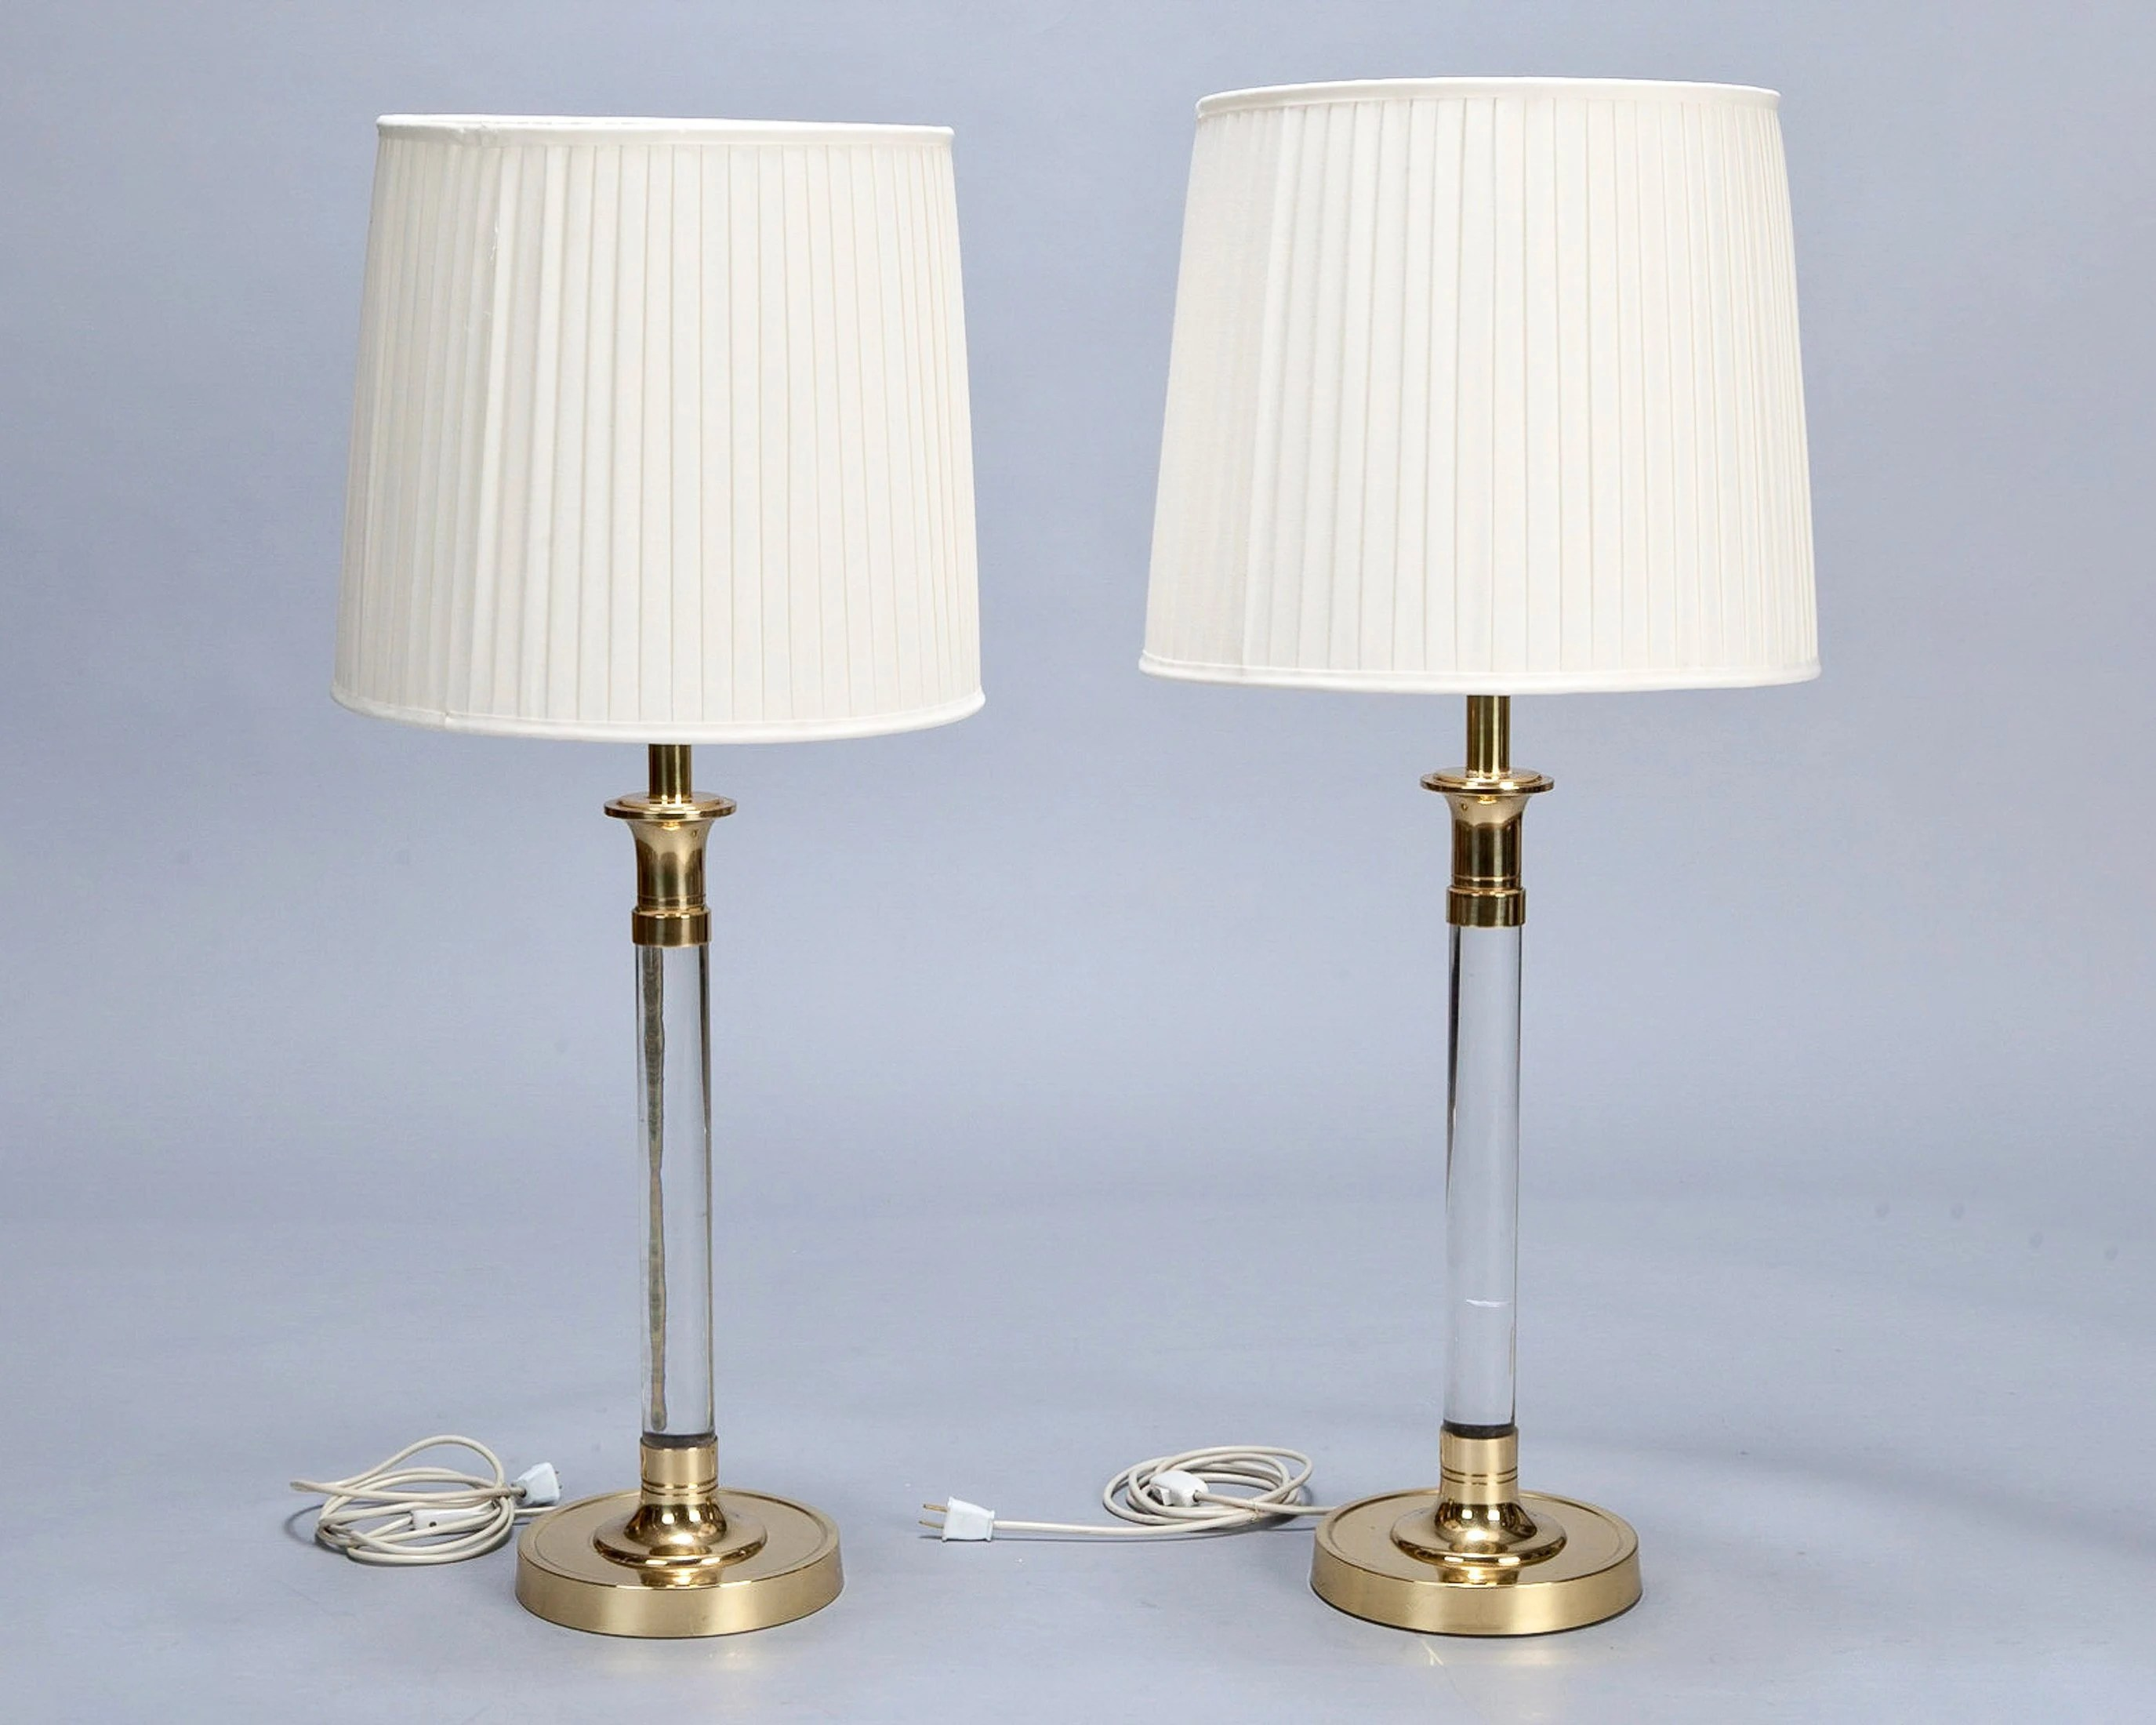 Lamp Method Price Pair Tall Mid Century Lucite And Brass Table Lamps 5728